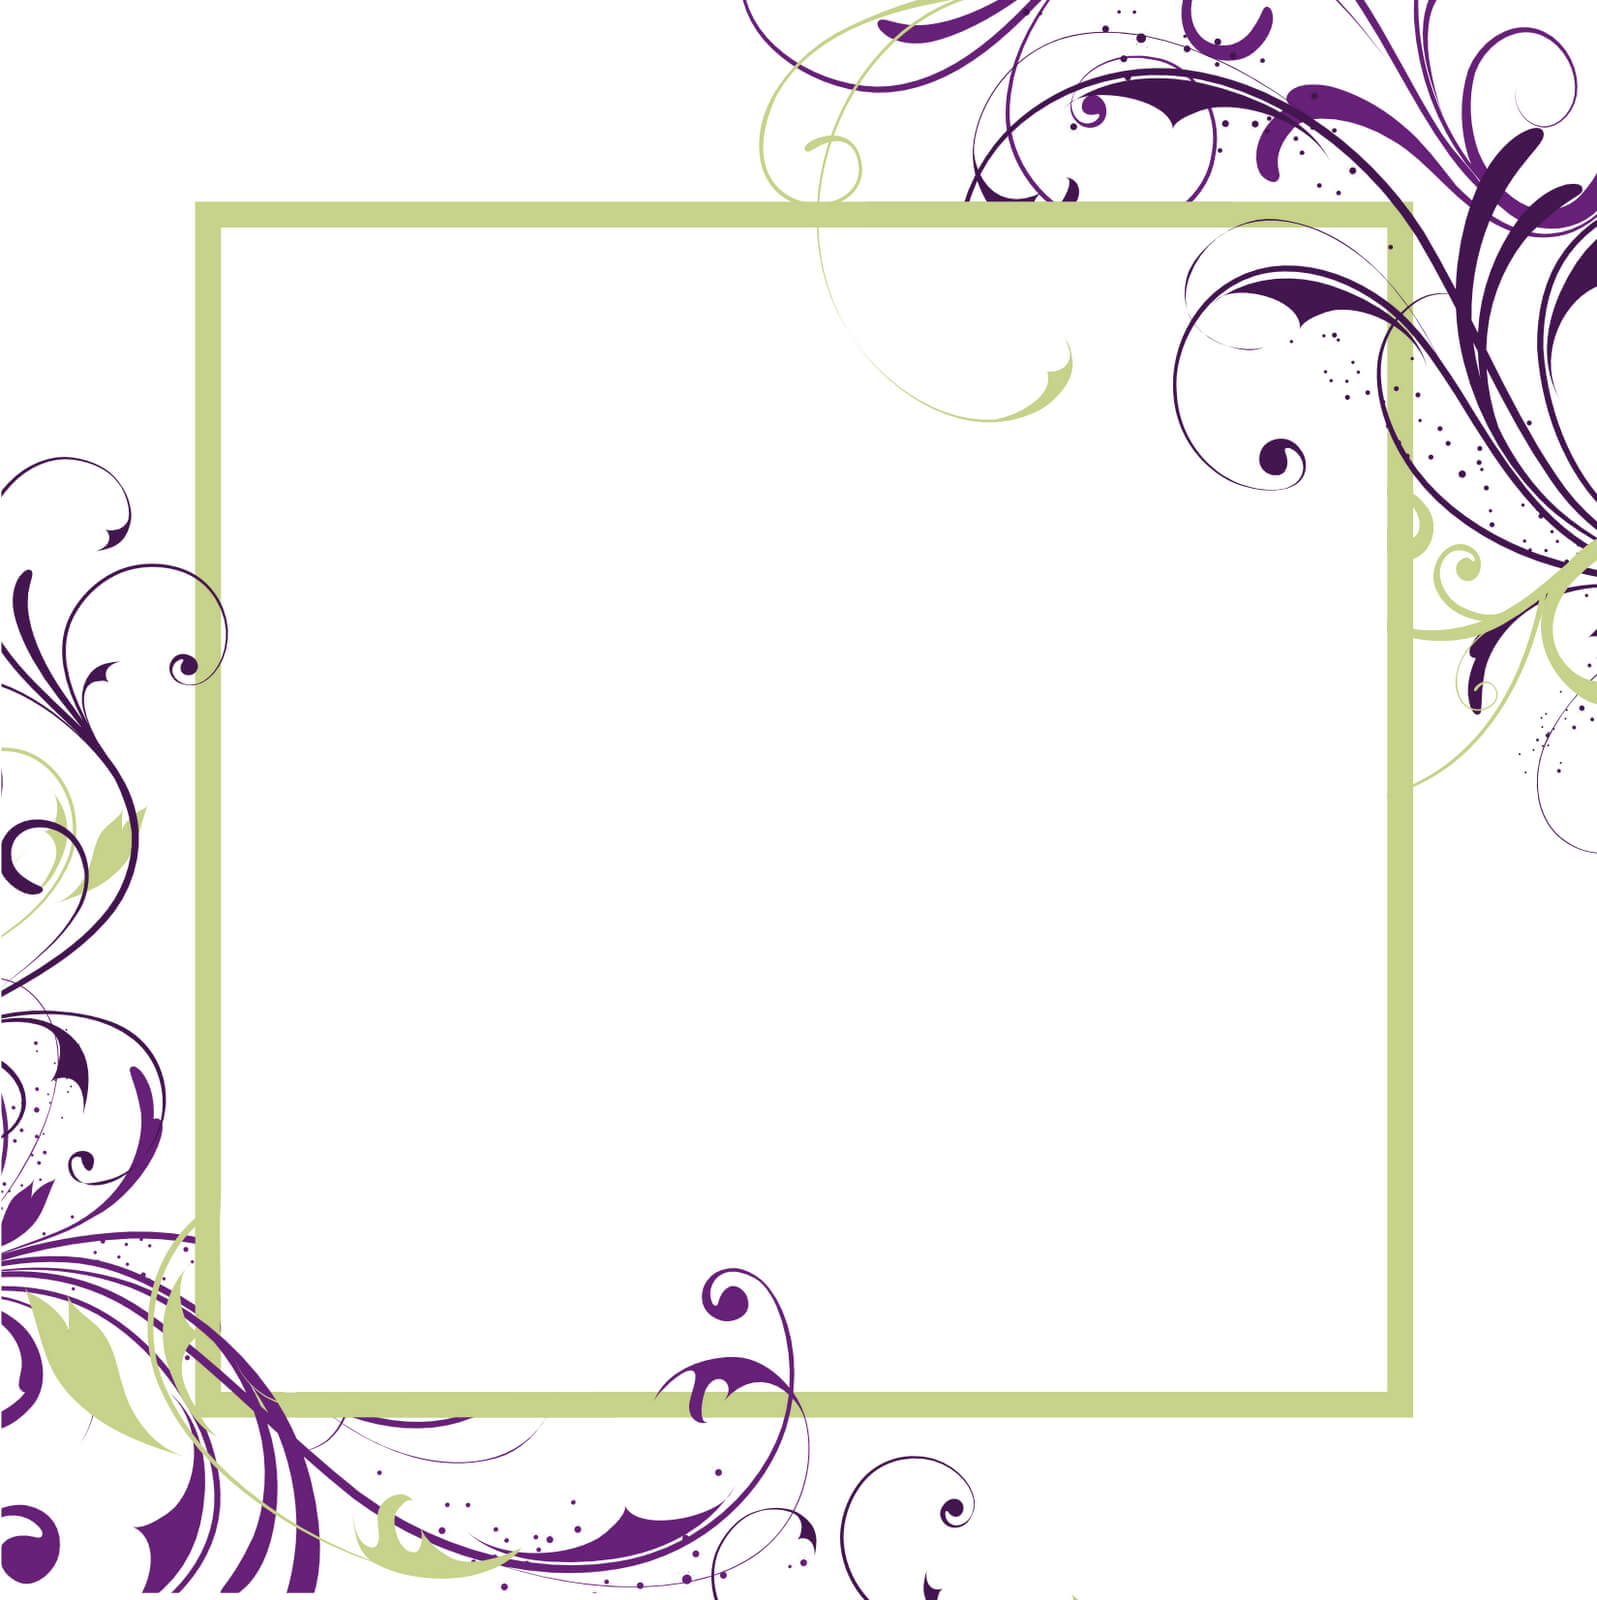 Free Printable Blank Invitations Templates | Wedding Invite Intended For Blank Templates For Invitations